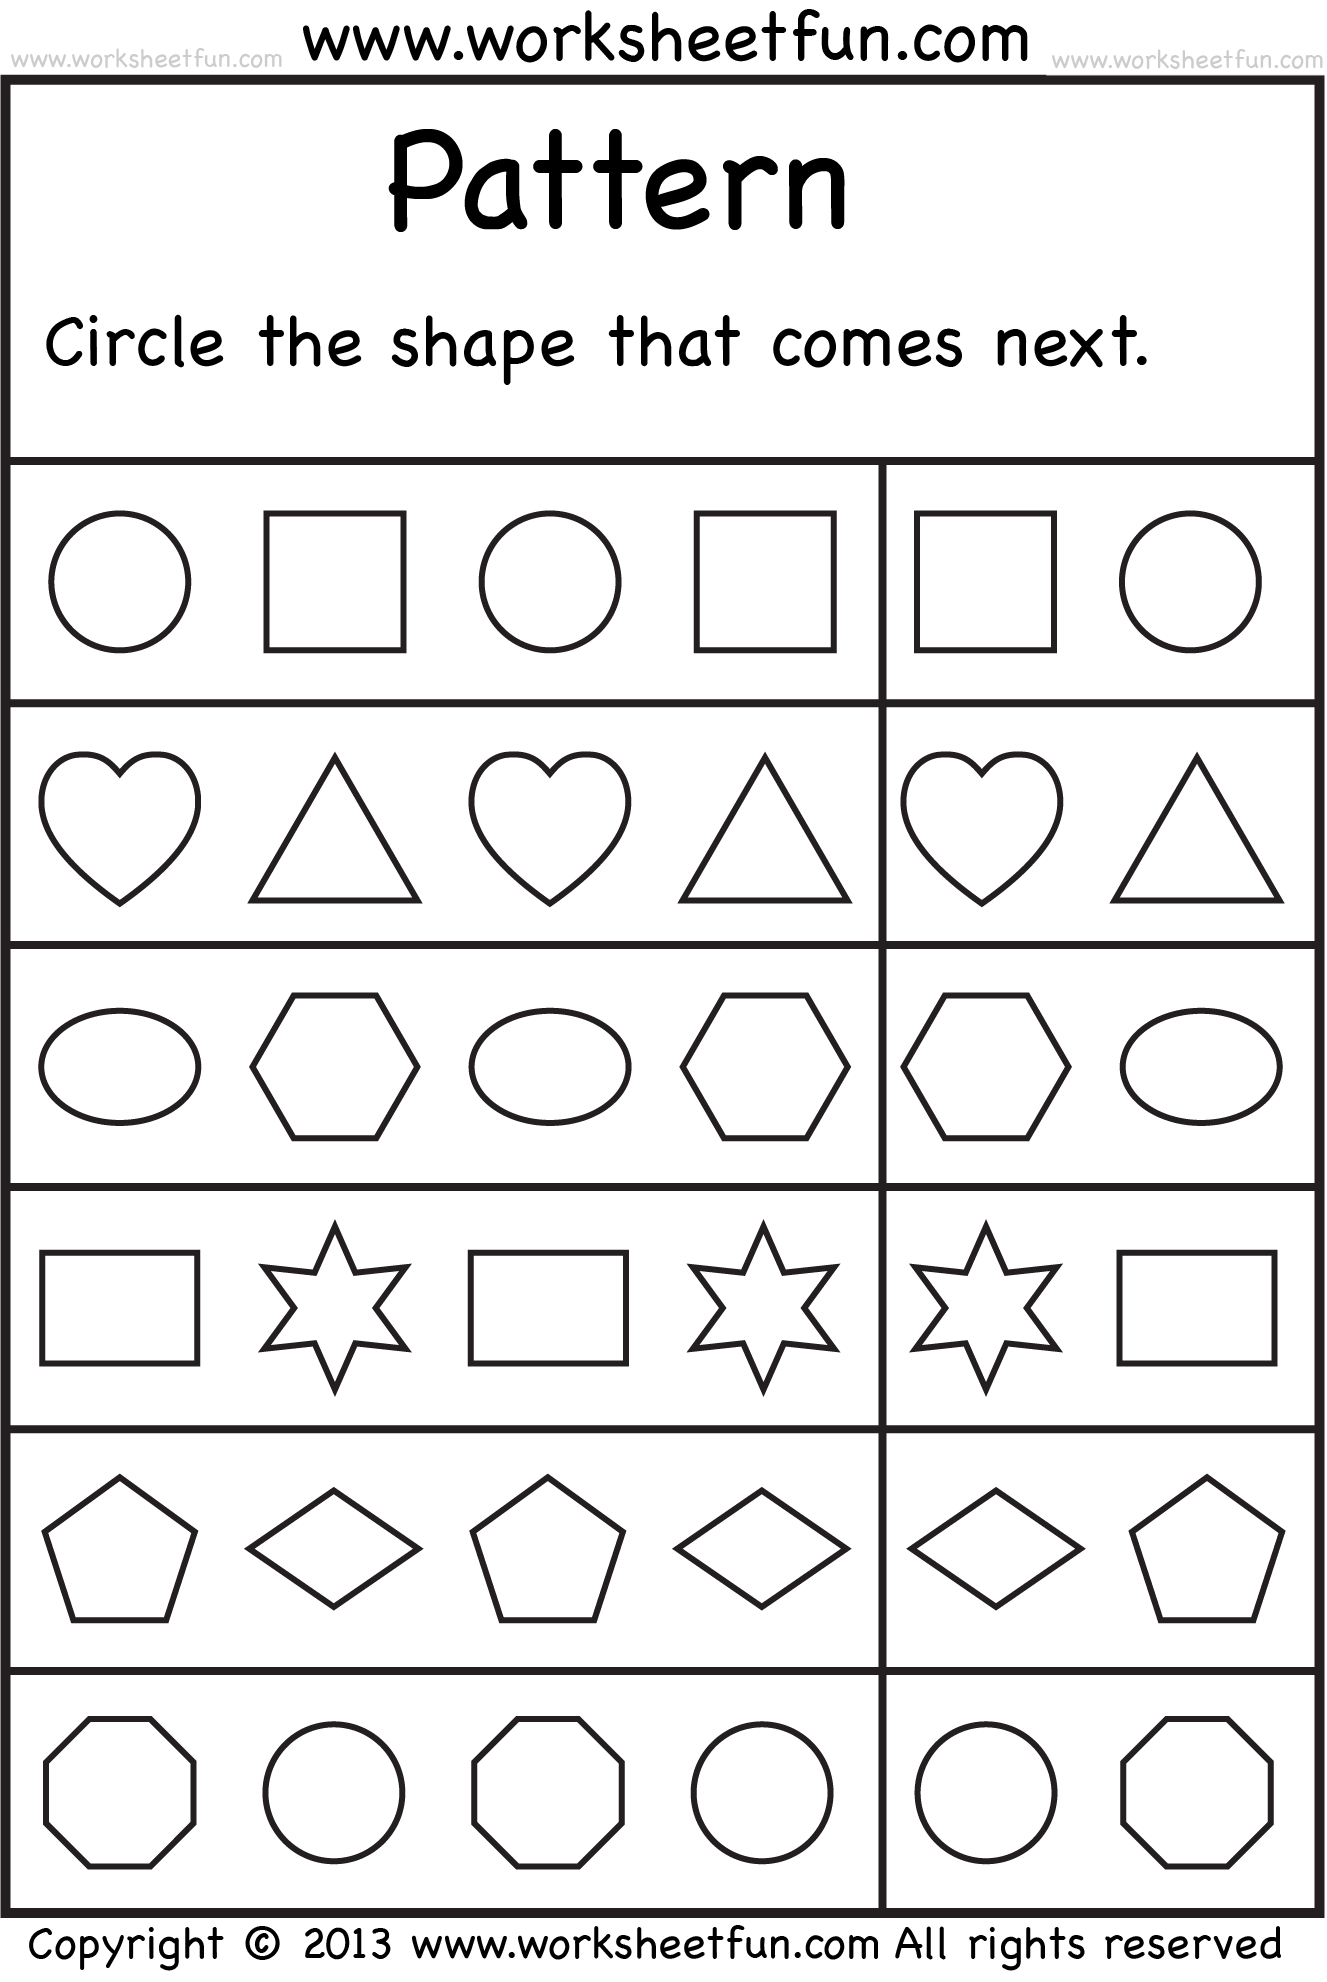 Proatmealus  Stunning  Images About School Worksheets On Pinterest  Number Words  With Licious  Images About School Worksheets On Pinterest  Number Words Alphabet Worksheets And Free Printable Kindergarten Worksheets With Delectable Preschool Fine Motor Skills Worksheets Also Practice Writing Letters And Numbers Worksheets In Addition Valentine Comprehension Worksheets And Partitioning Decimals Worksheet As Well As Balance Equations Worksheets Additionally Urdu Writing Practice Worksheets From Pinterestcom With Proatmealus  Licious  Images About School Worksheets On Pinterest  Number Words  With Delectable  Images About School Worksheets On Pinterest  Number Words Alphabet Worksheets And Free Printable Kindergarten Worksheets And Stunning Preschool Fine Motor Skills Worksheets Also Practice Writing Letters And Numbers Worksheets In Addition Valentine Comprehension Worksheets From Pinterestcom